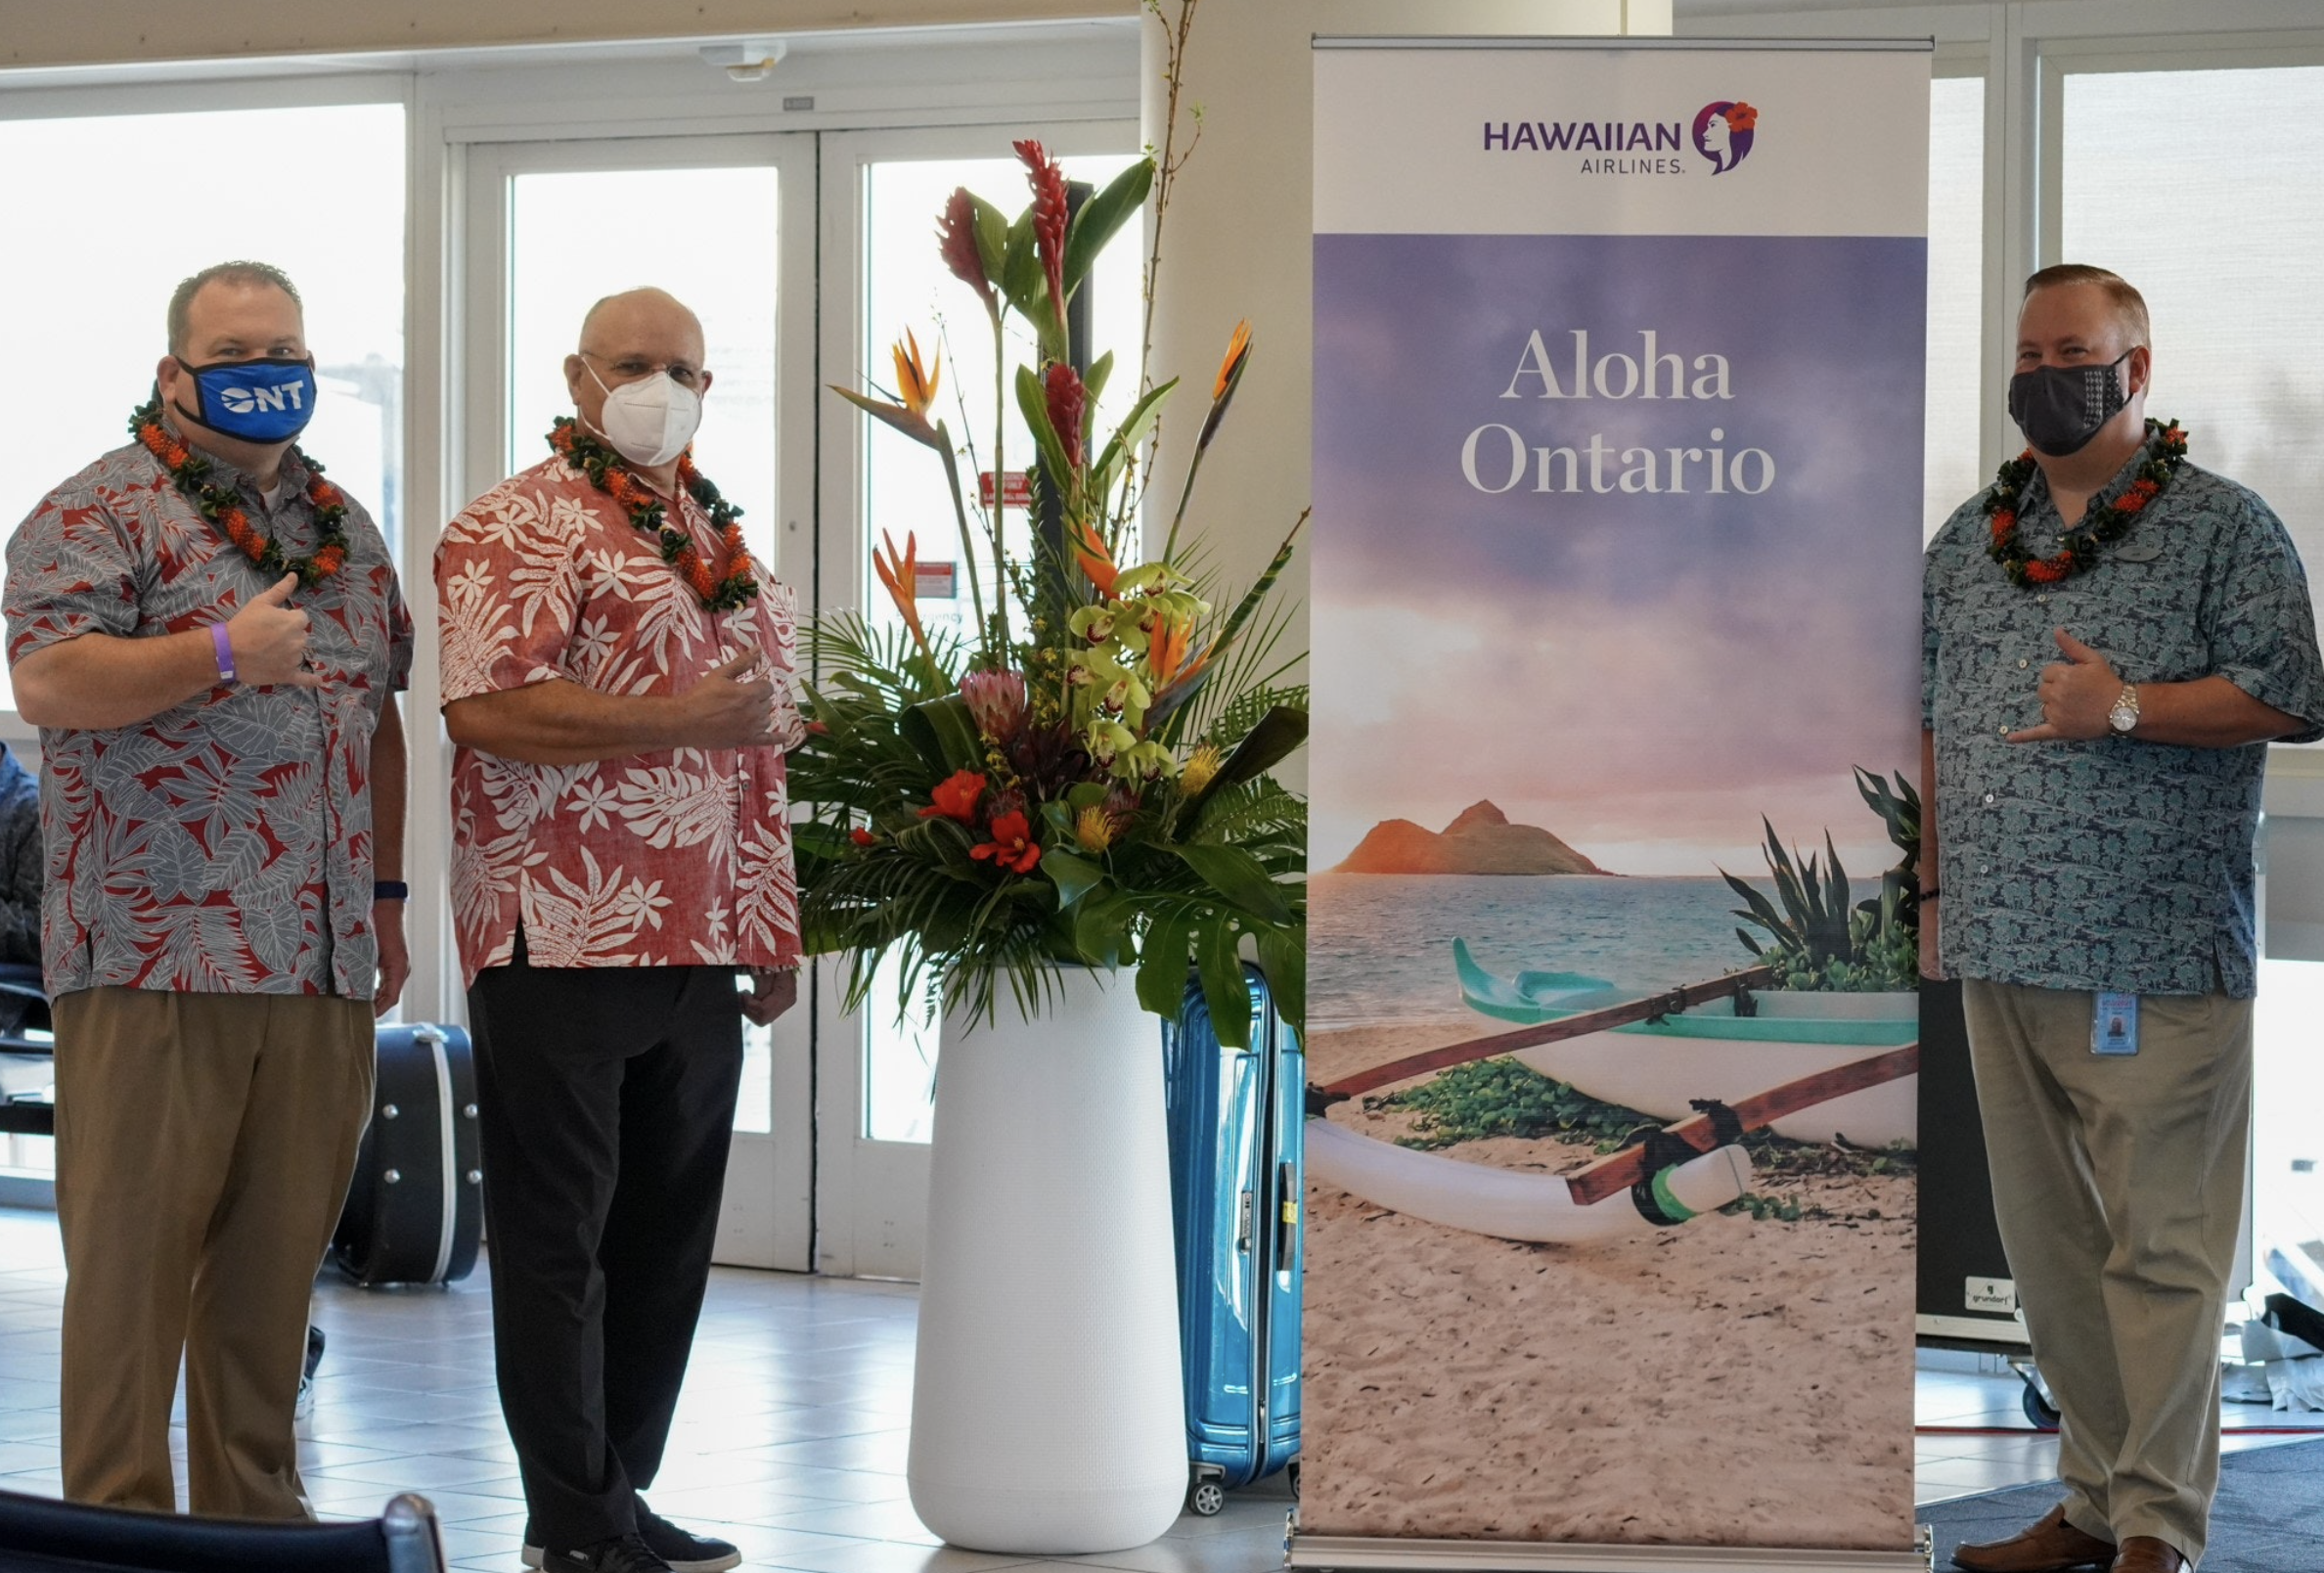 Ontario is 2nd Airport Certified as Trusted Testing Partner for Hawaiʻi Bound Travelers